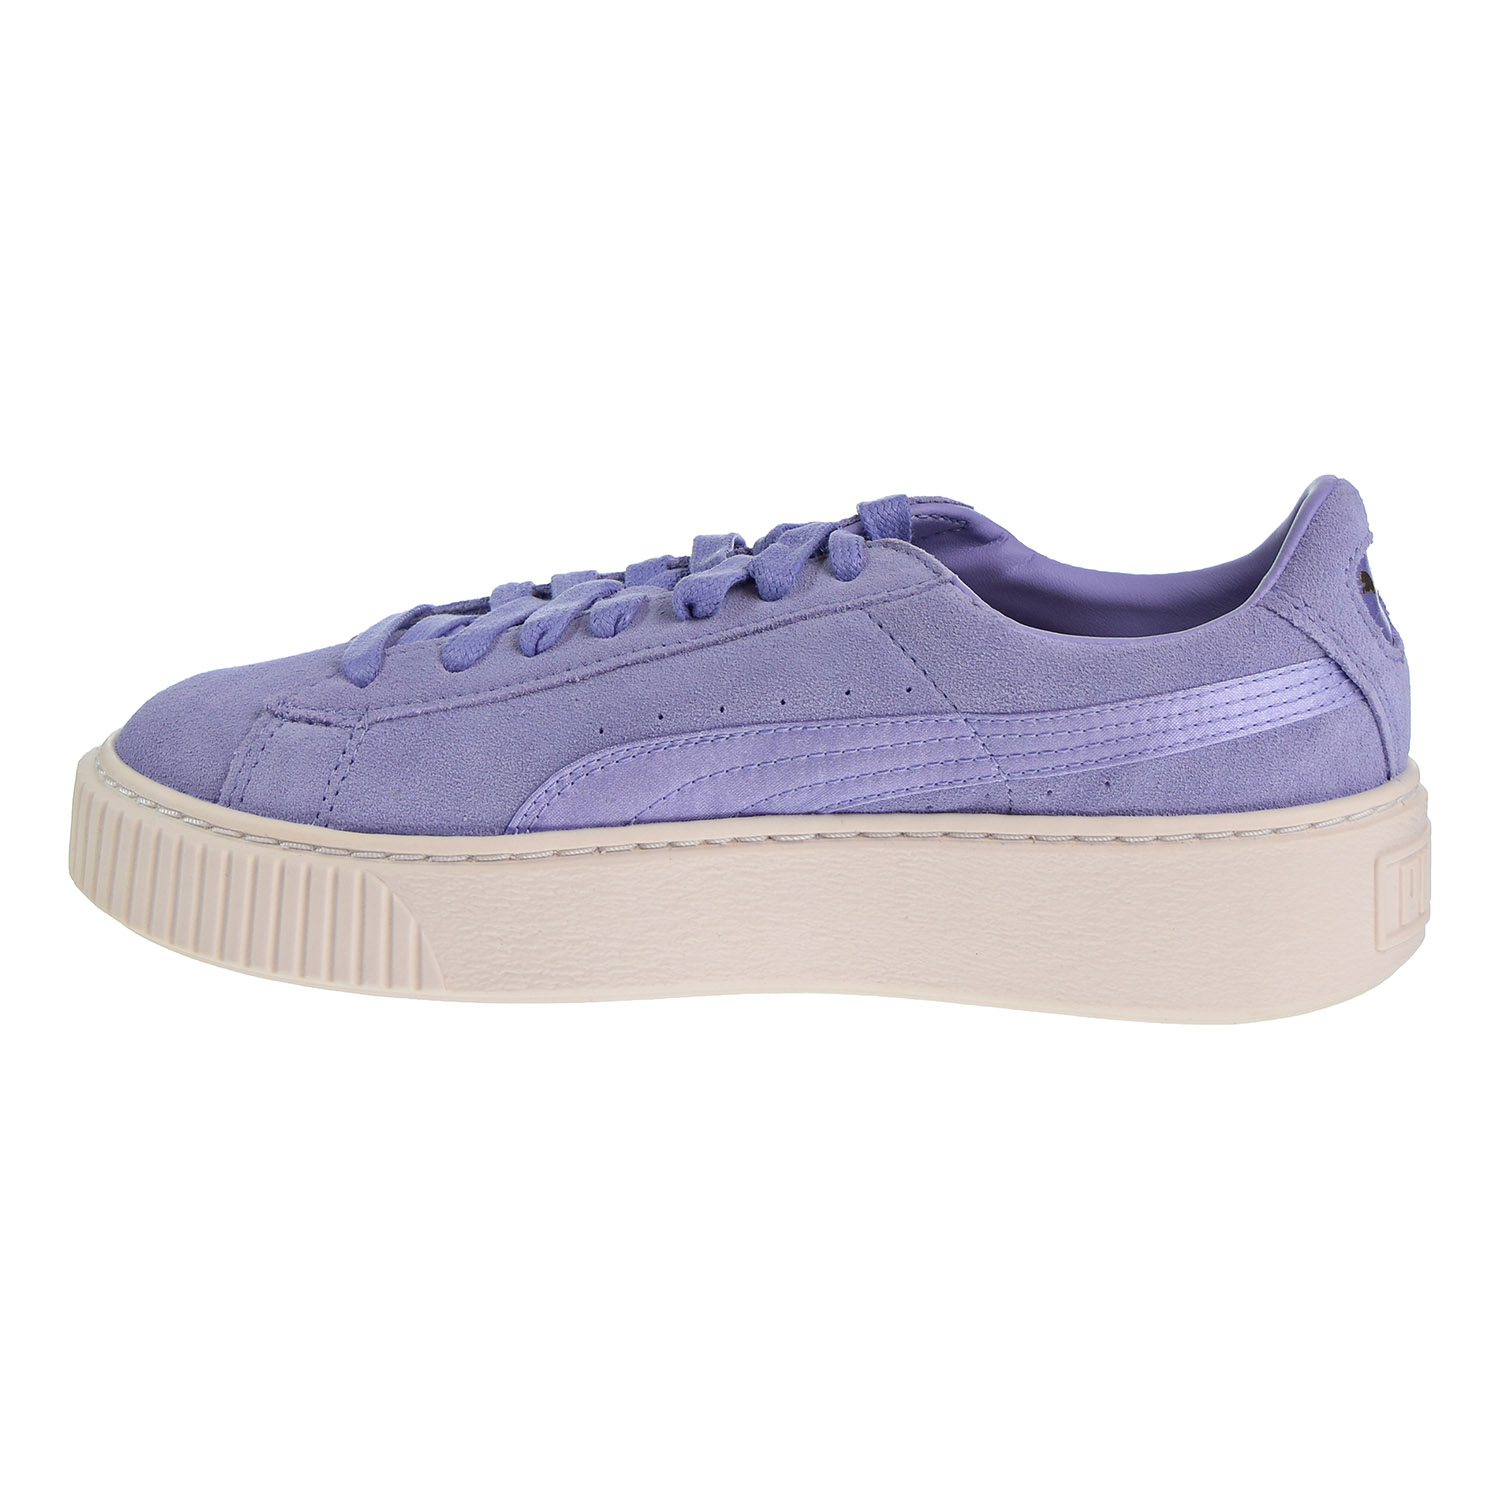 Puma Suede Platform Mono Satin Women's Shoes Lavender Whisper Gold 365828 01 | eBay